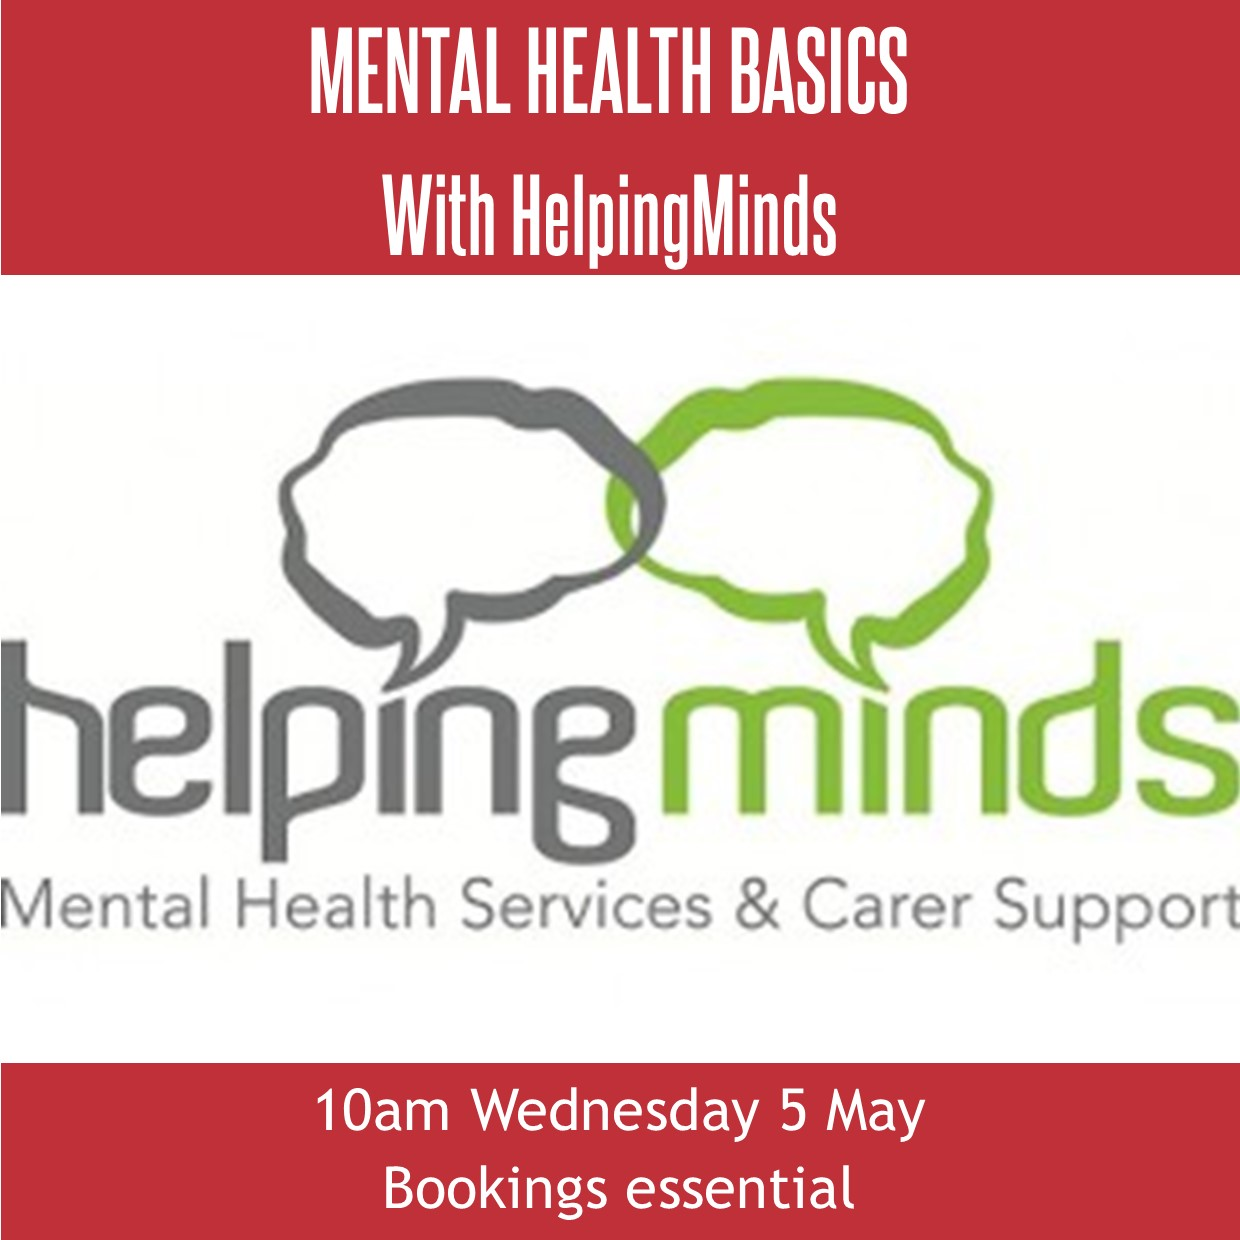 Mental Health Basics with HelpingMinds